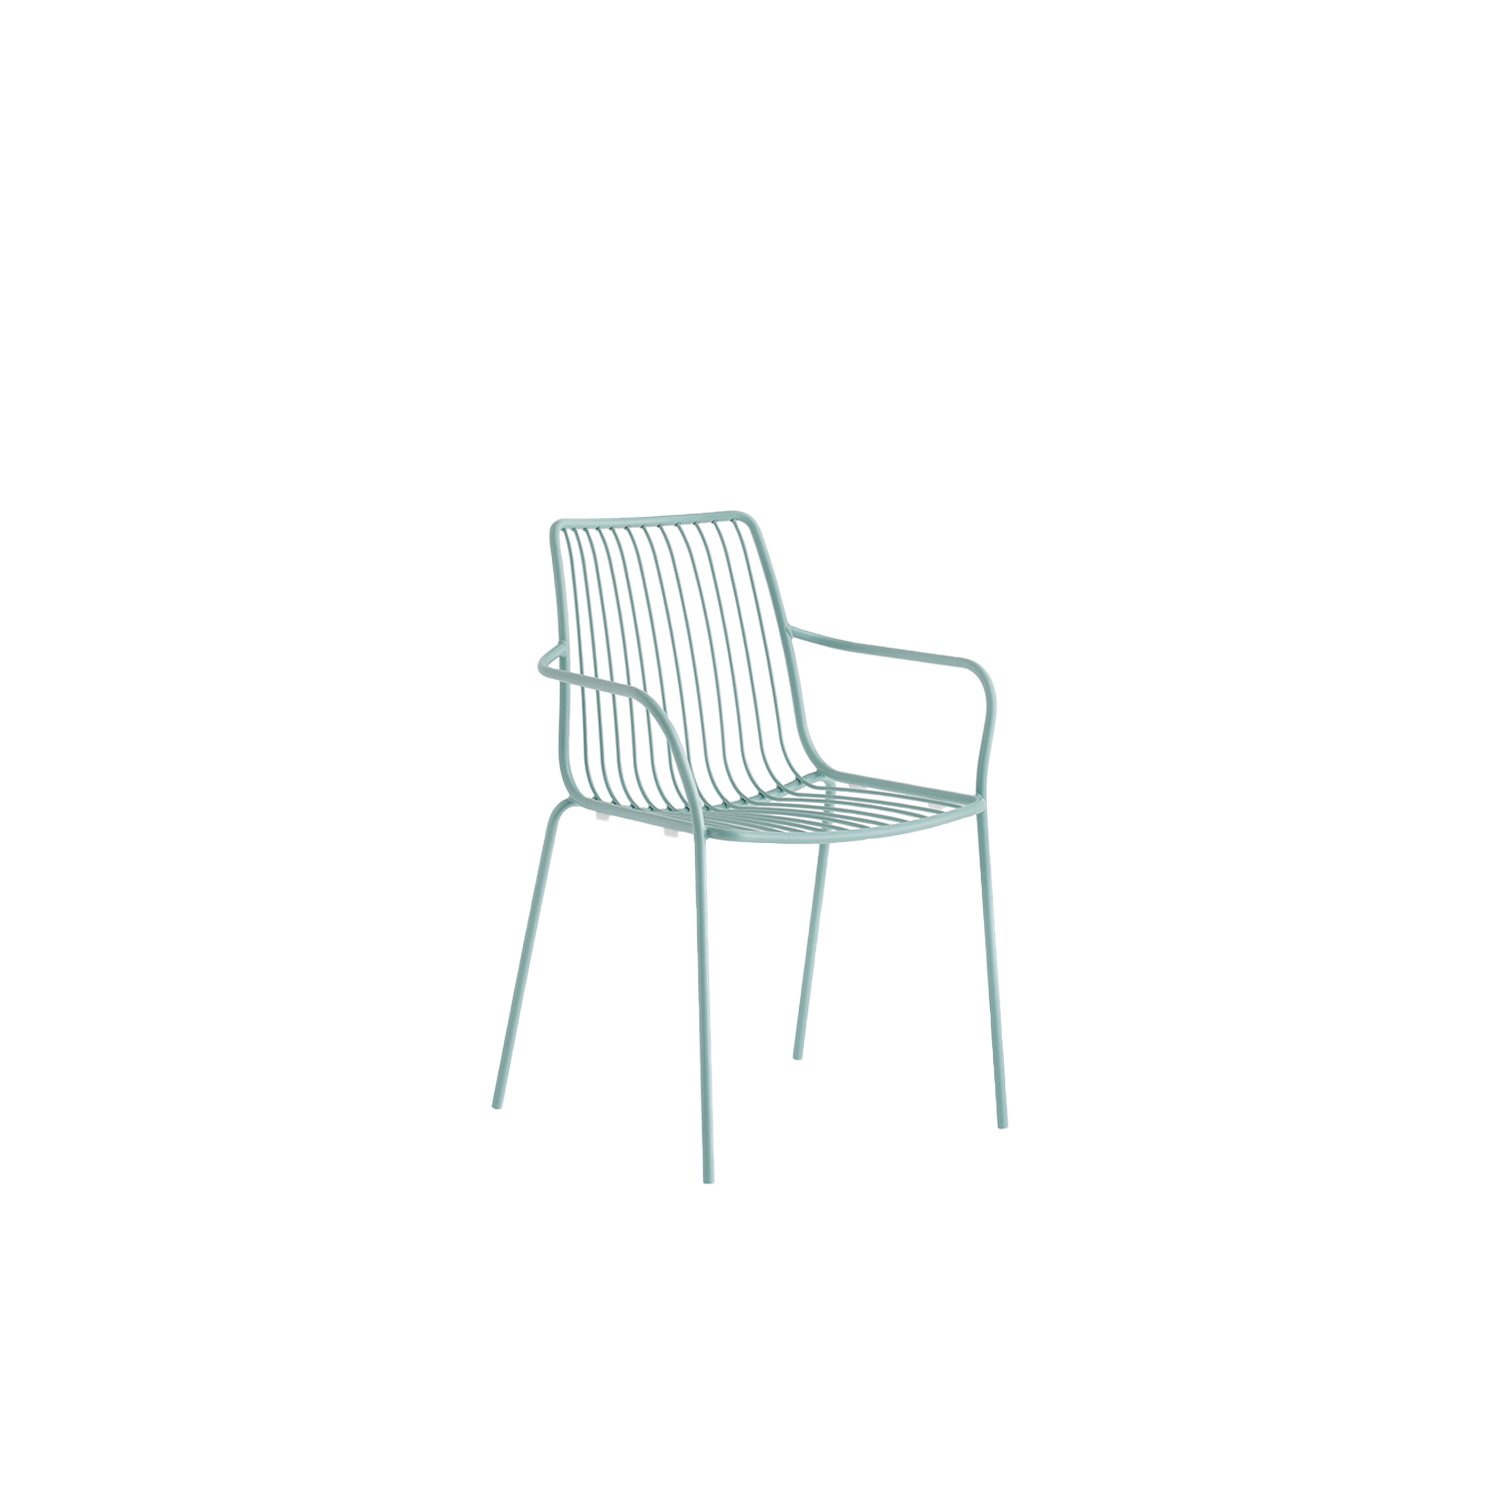 Nolita Armchair High Back - Nolita is a family of outdoor seatings which recalls the origins of a historic course, started by Mario Pedrali in 1963 with his first metal garden chairs. Armchair with high backrest, completely made of steel and designed specifically for outdoor use. Stackable. A seat cushion is also available.  | Matter of Stuff